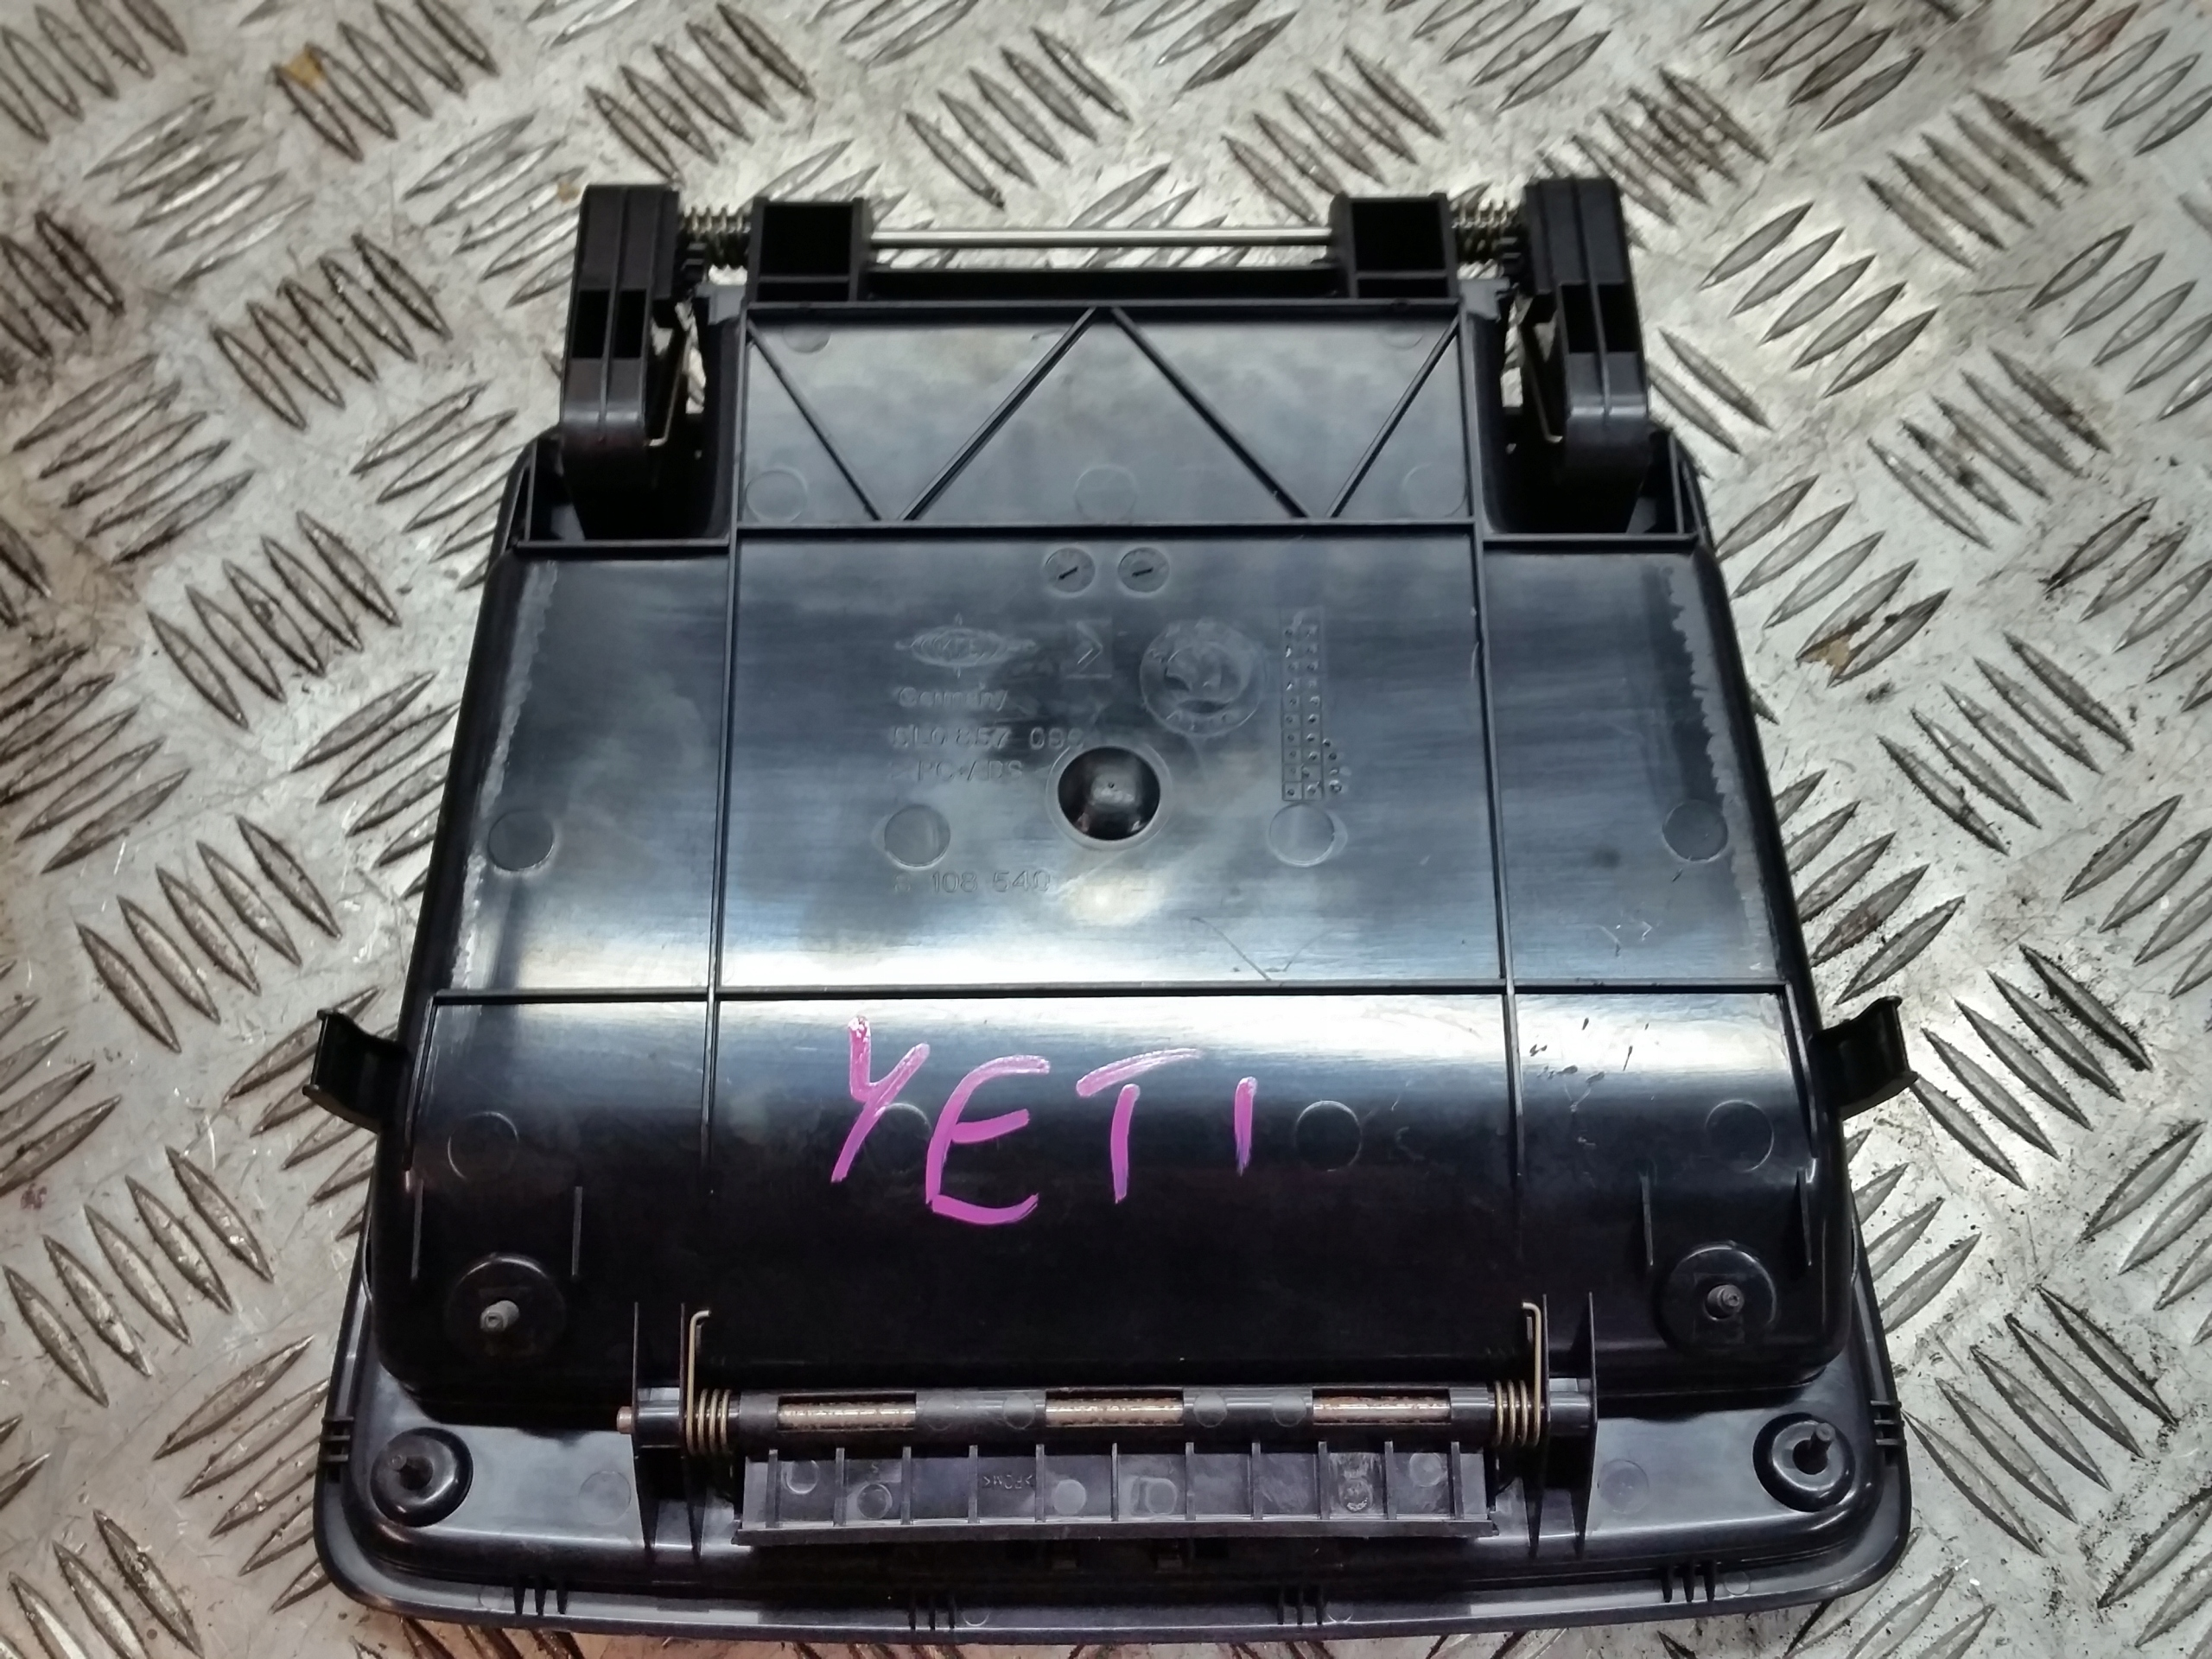 A TOWER MIDDLE BOARDS SKODA YETI 5L0